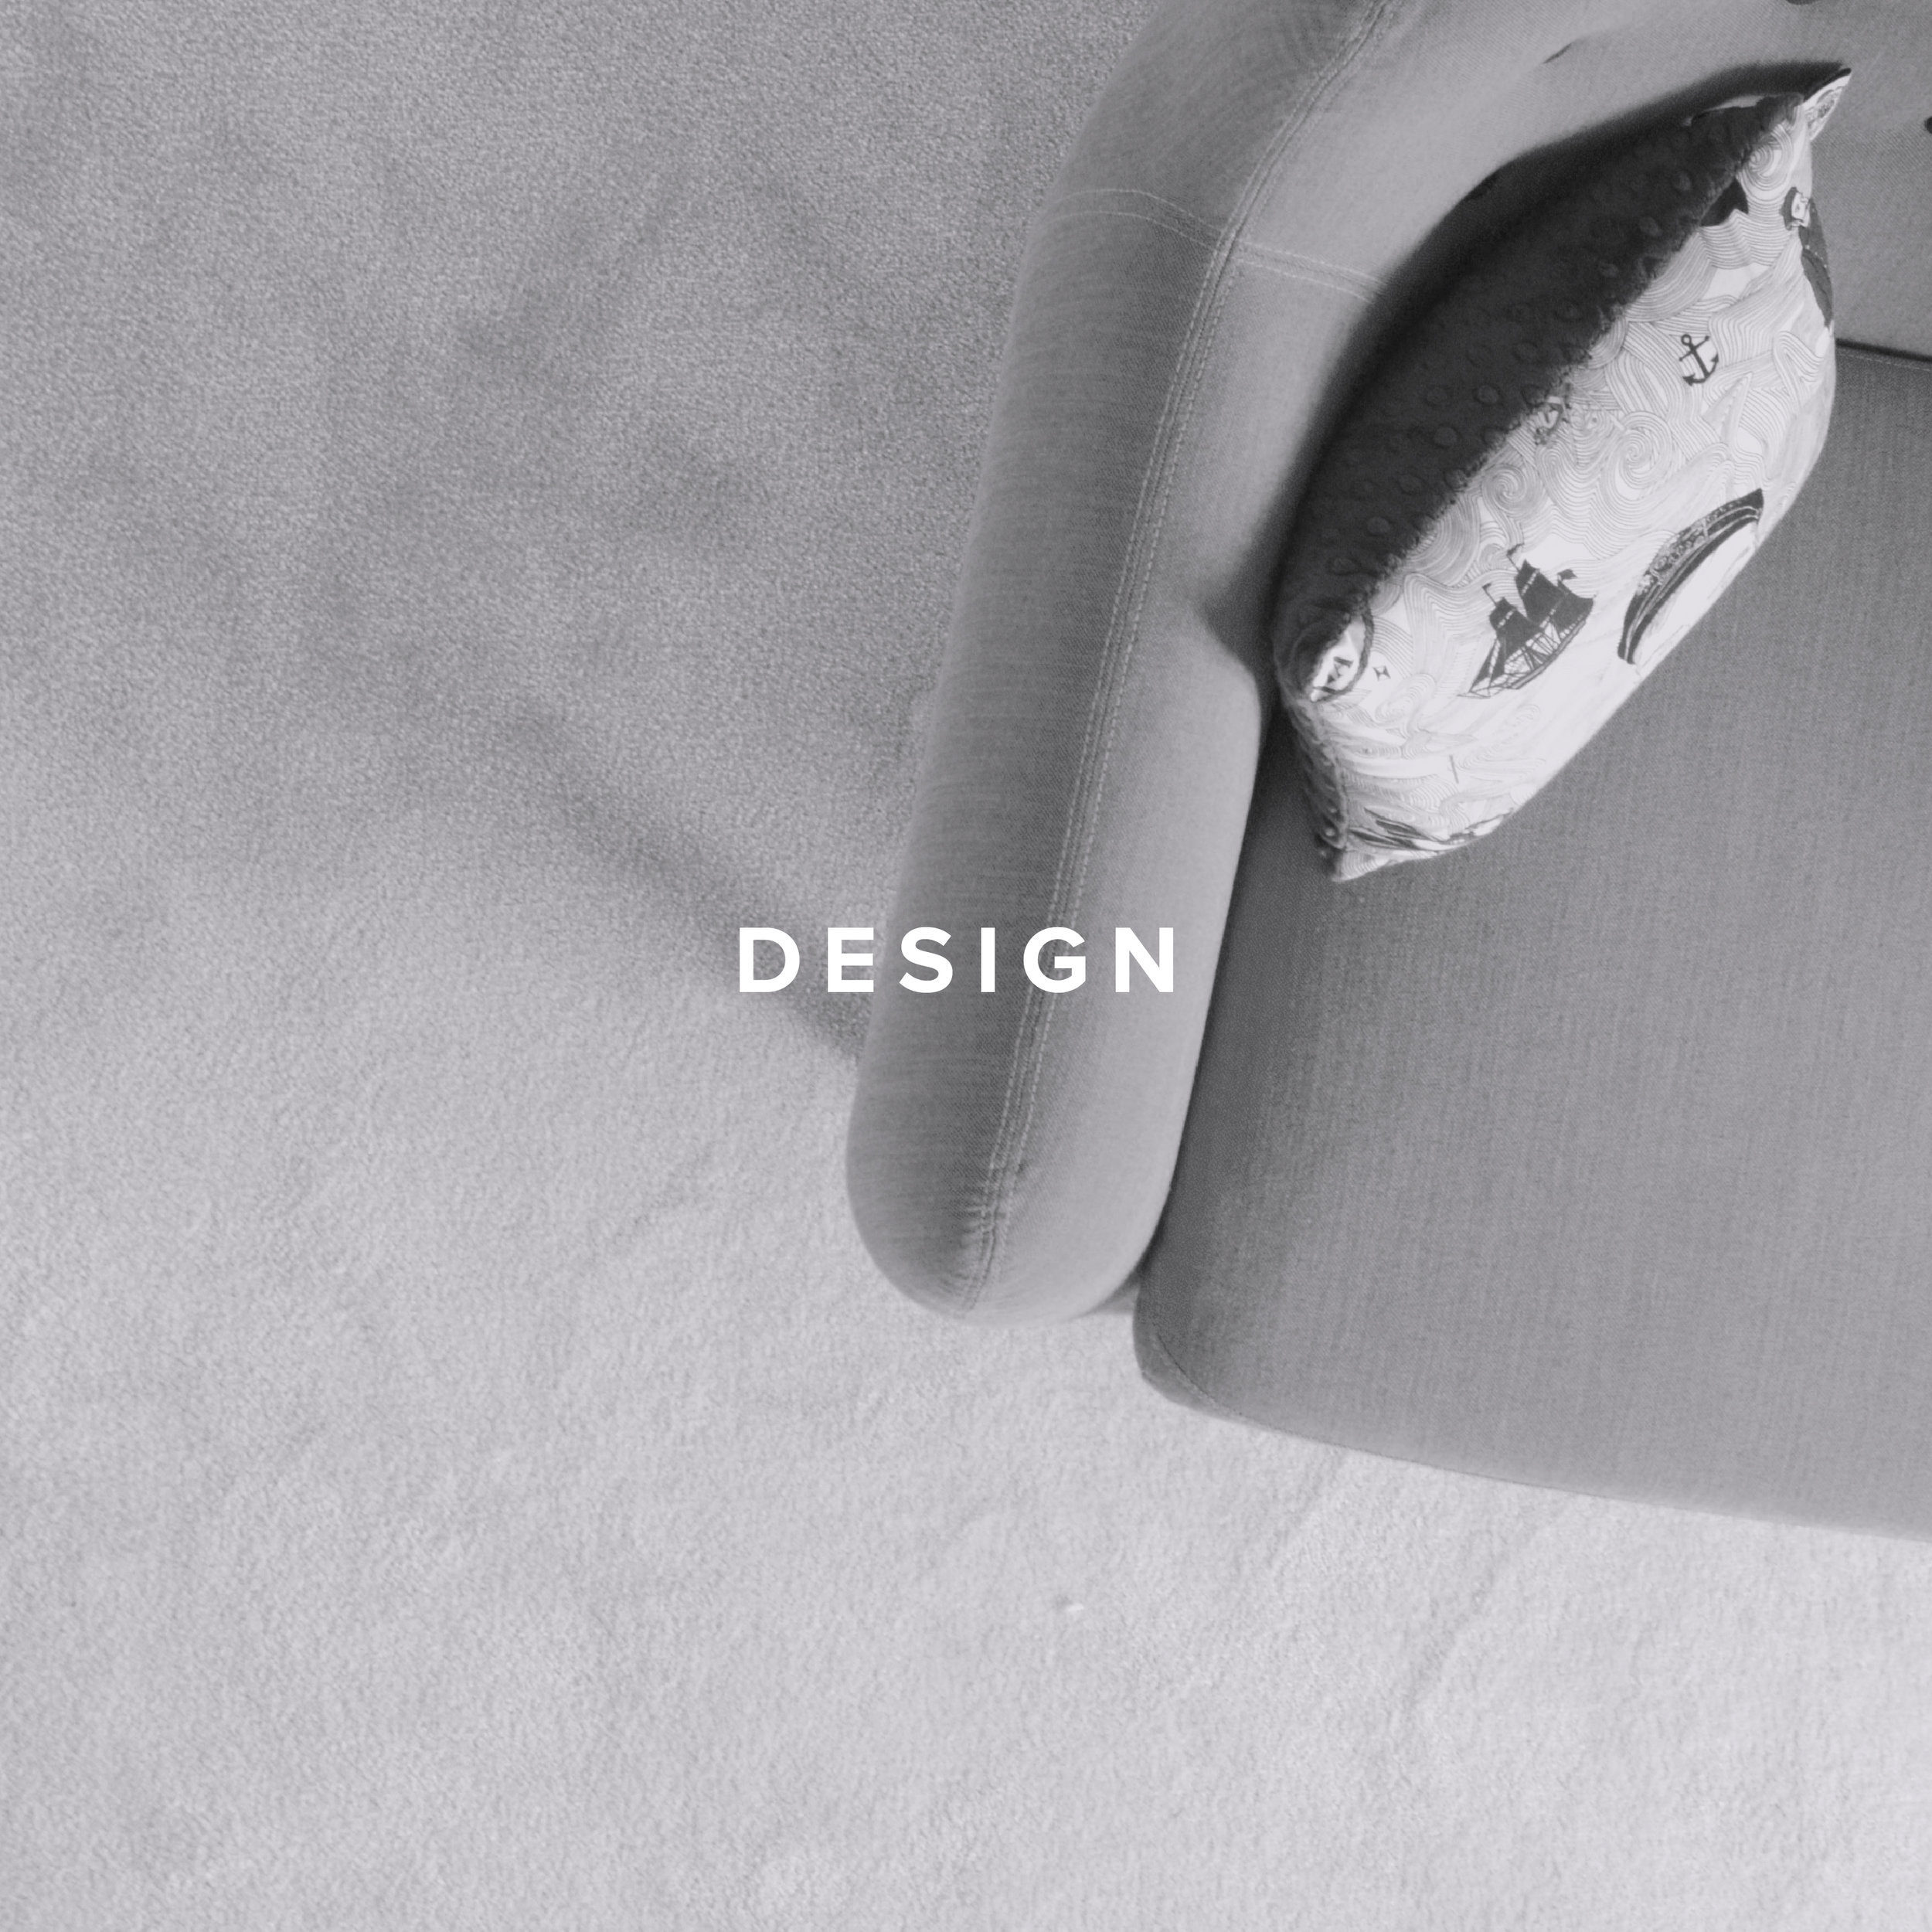 We understand beautiful things. Design = Art. We connect the two.